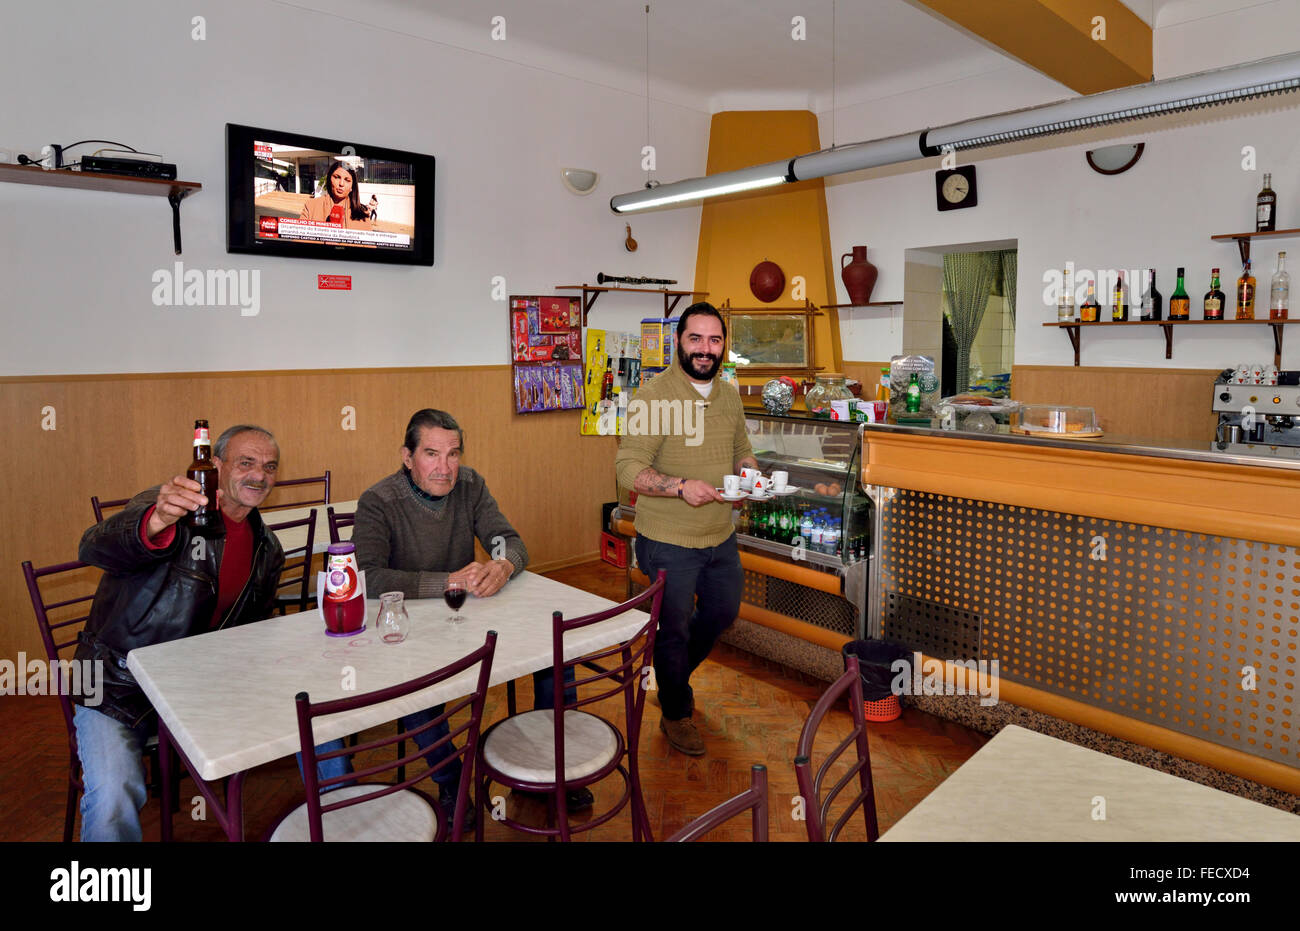 Portugal, Alentejo: Bar owner Sérgio serving coffee with clients having a drink in the Retired´s Club - Stock Image